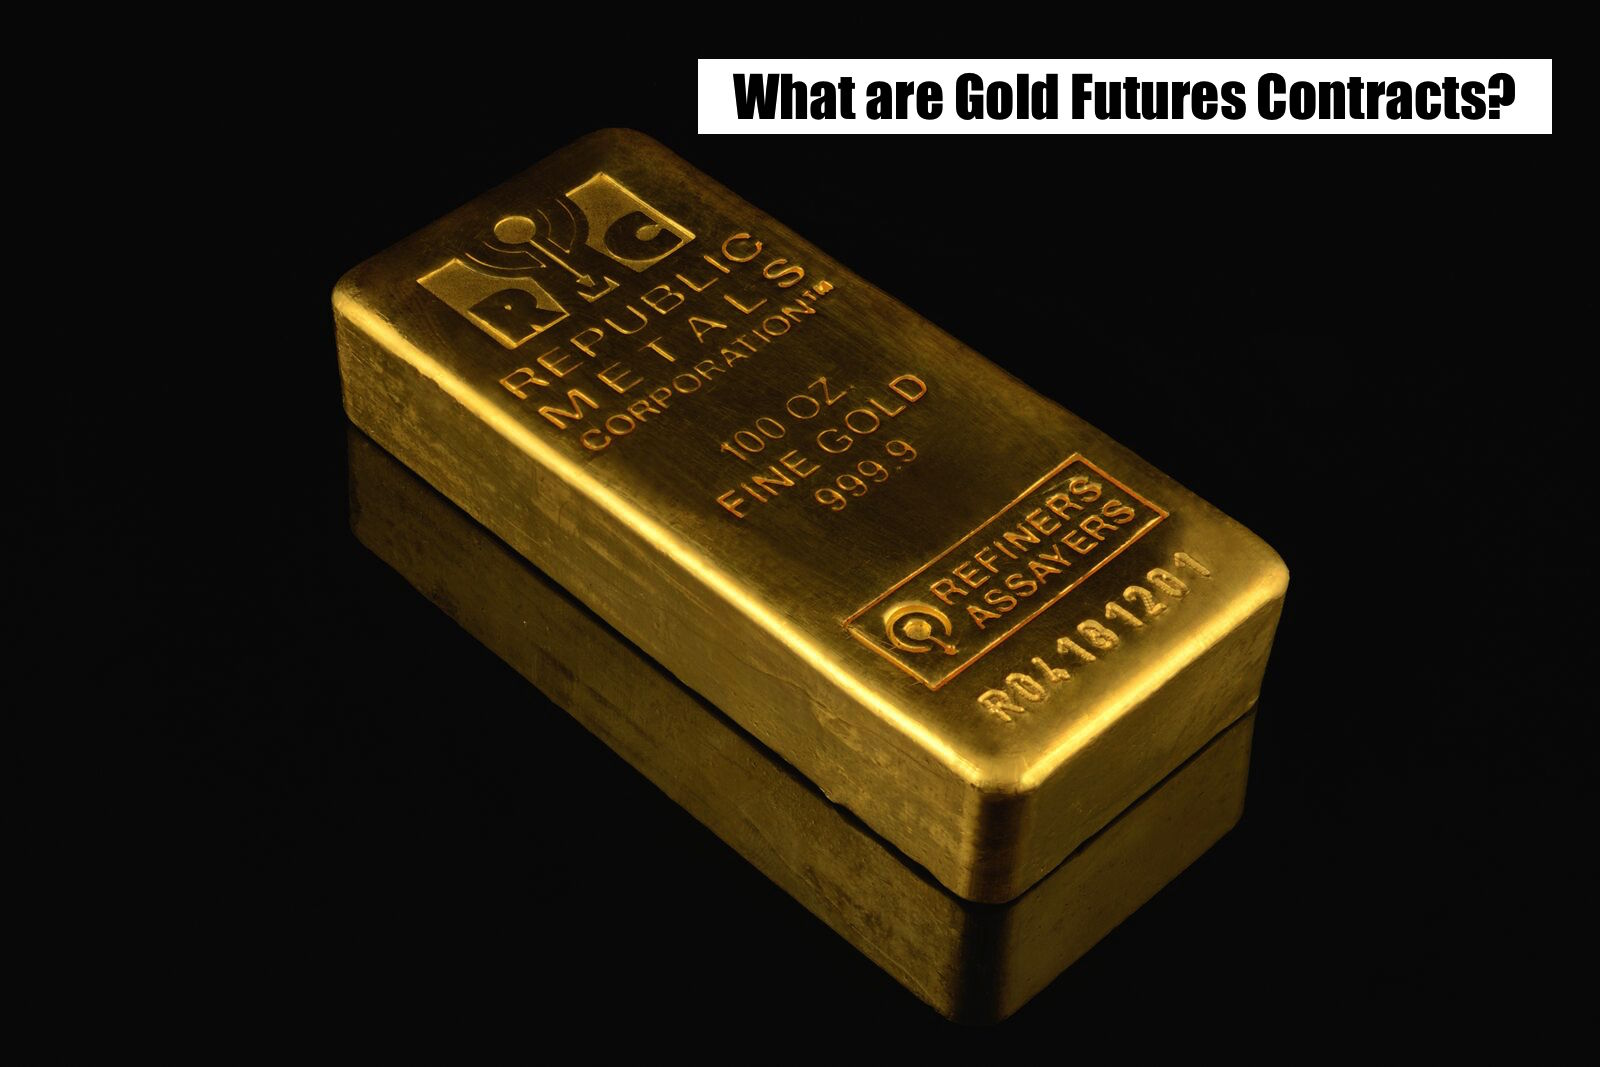 What are Gold Futures Contracts and how do they work?